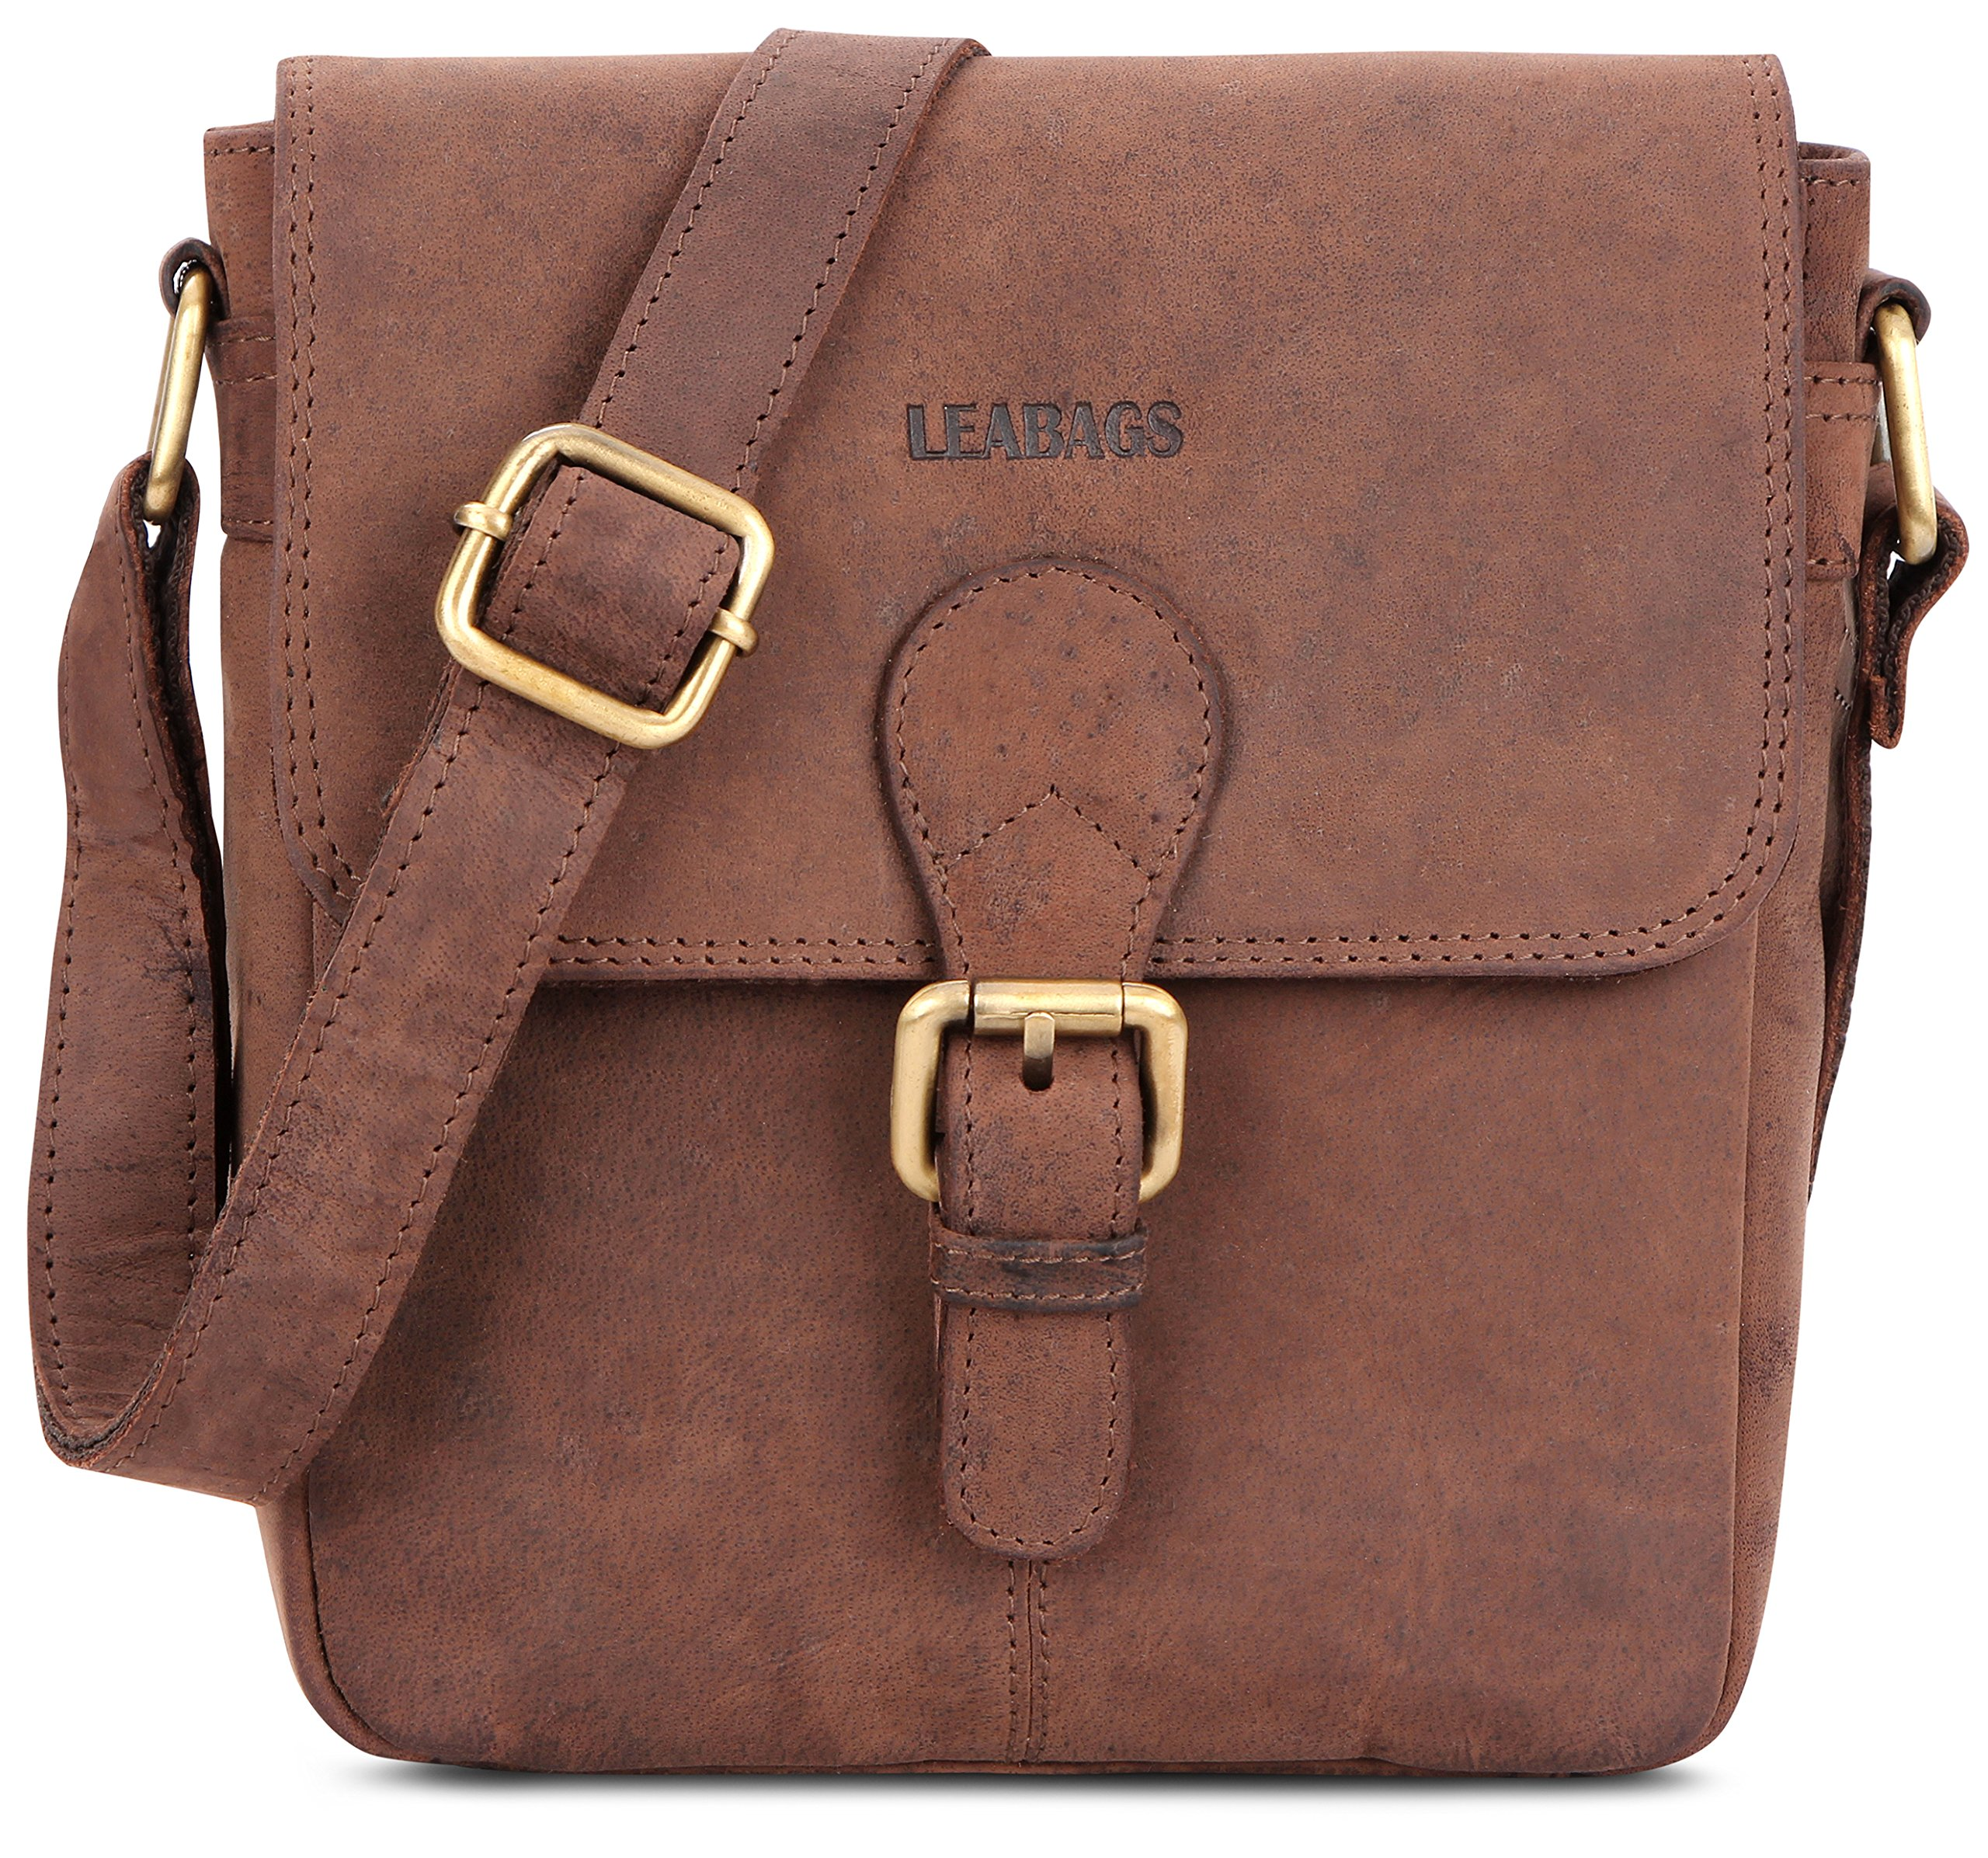 LEABAGS Weston genuine buffalo leather city bag in vintage style - Nutmeg by LEABAGS (Image #1)